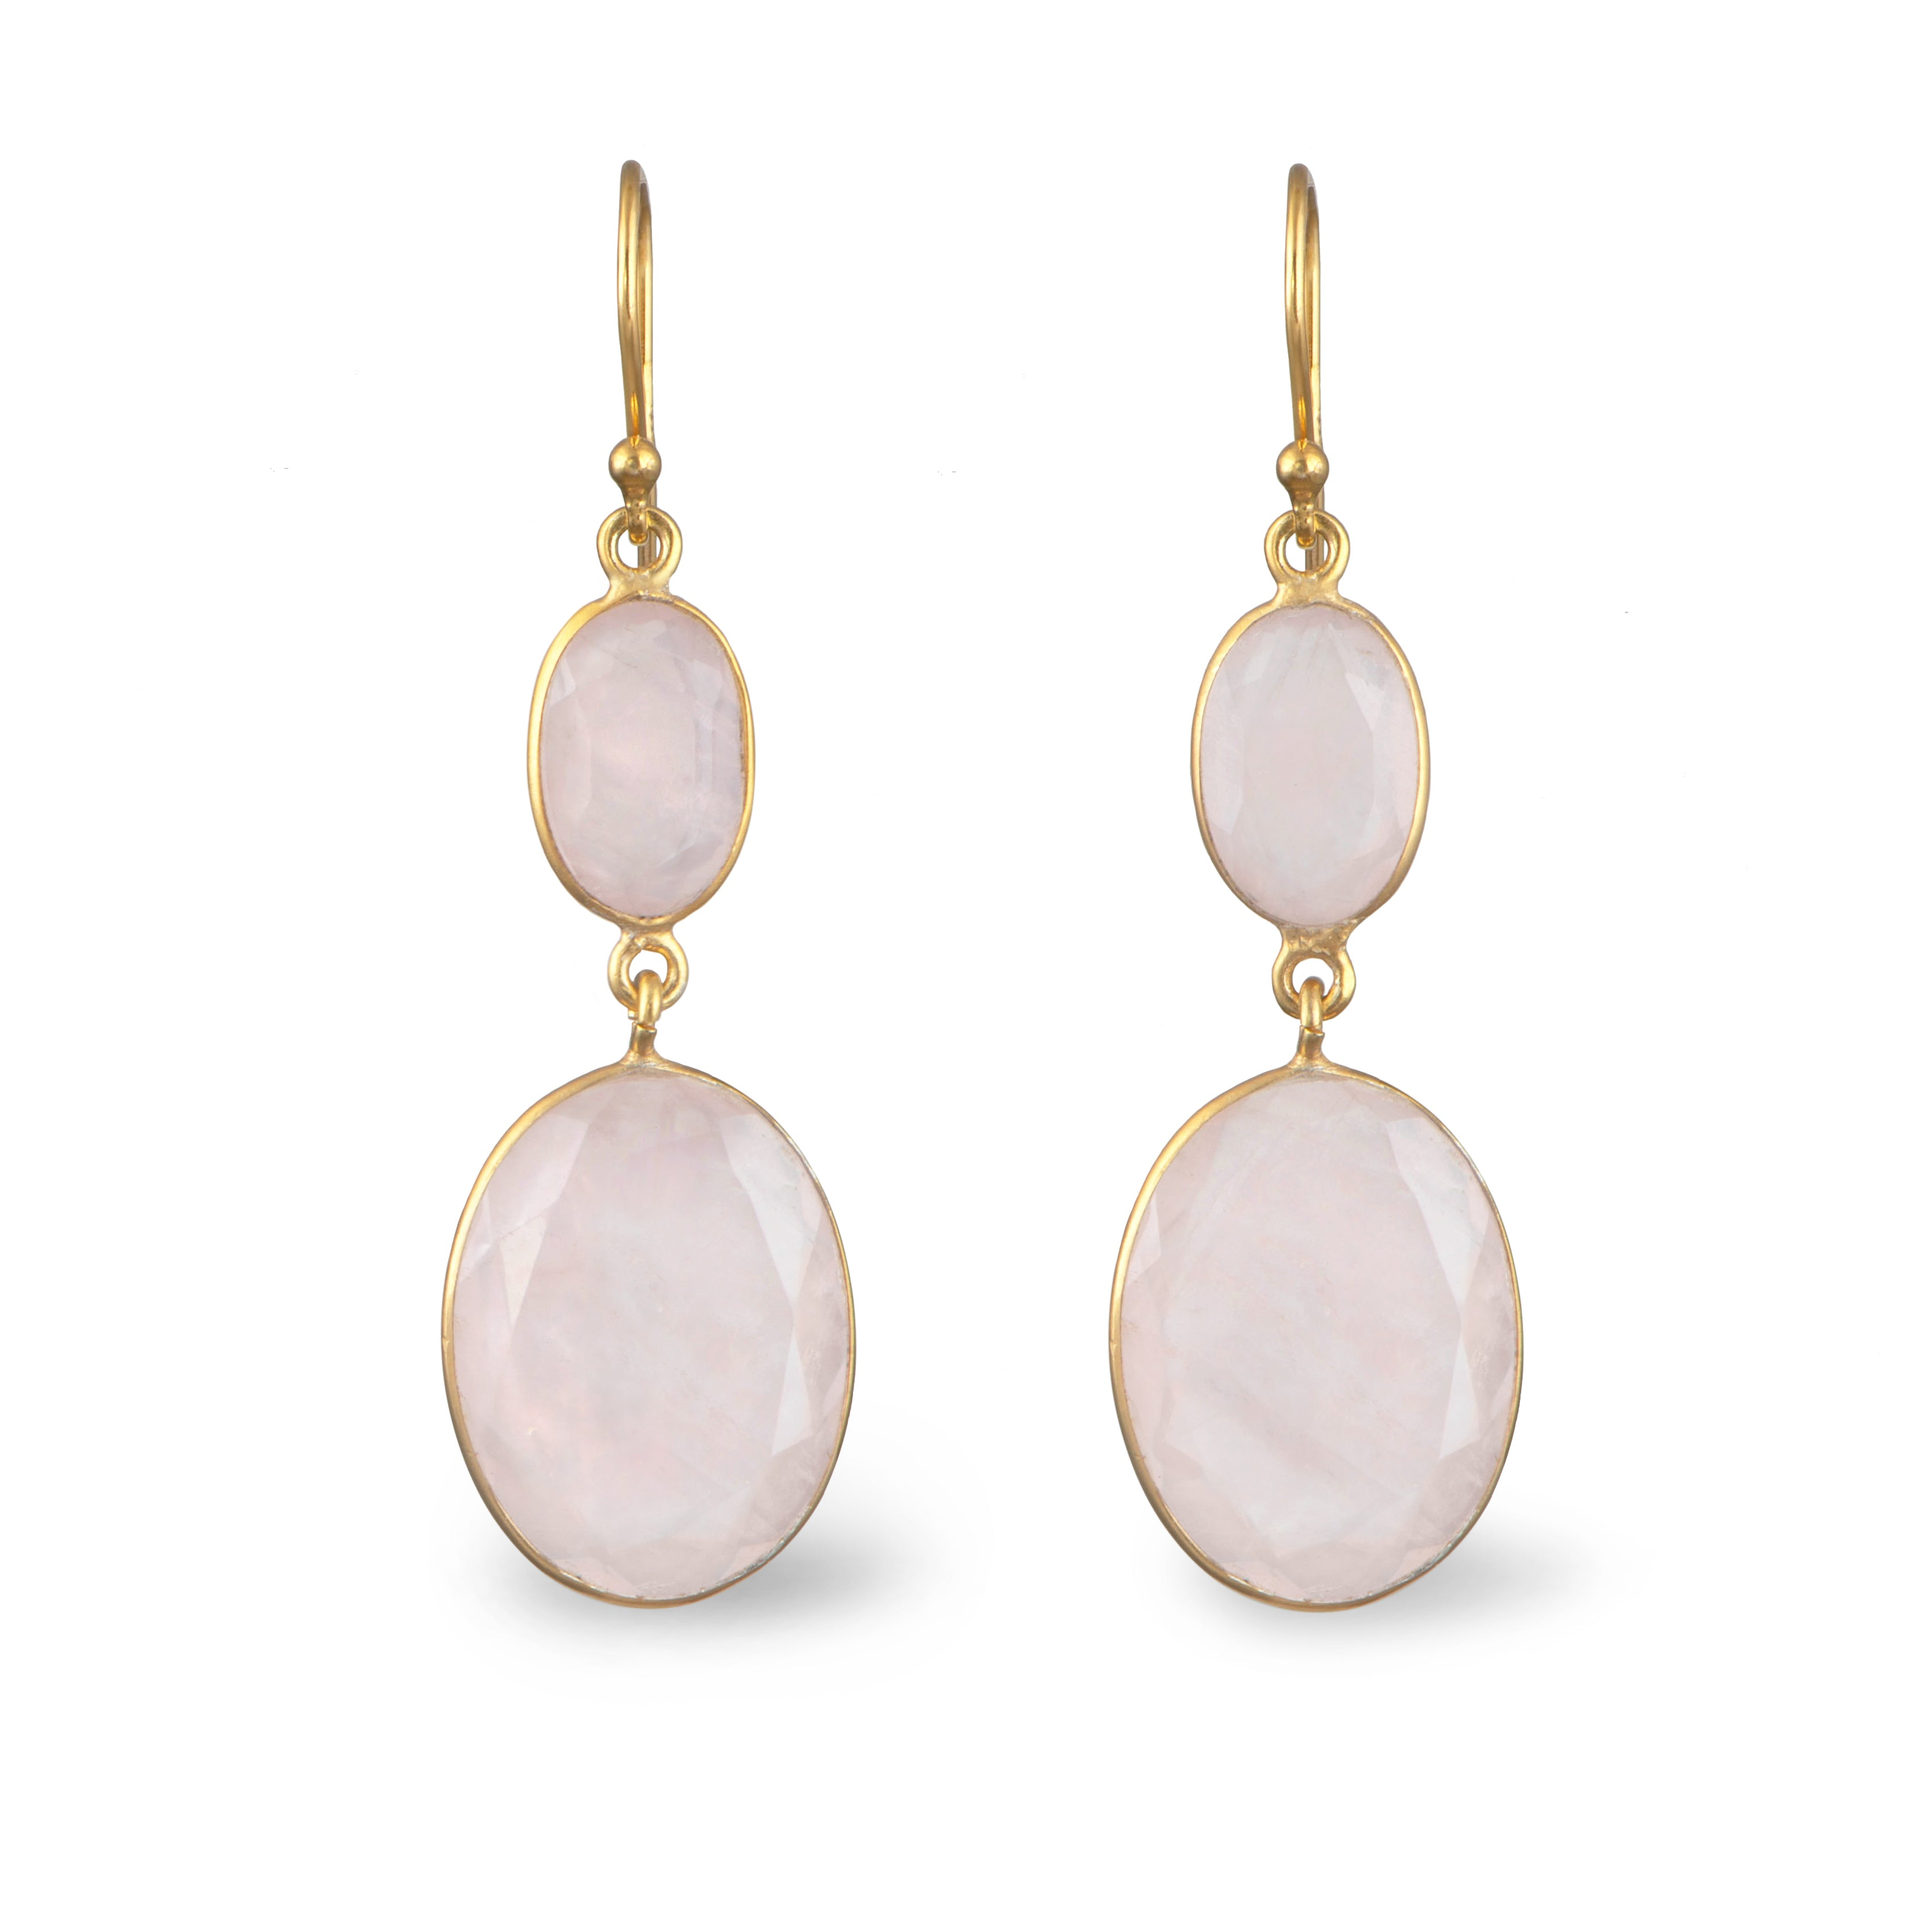 Gold Plated Semiprecious Stone Long Earrings